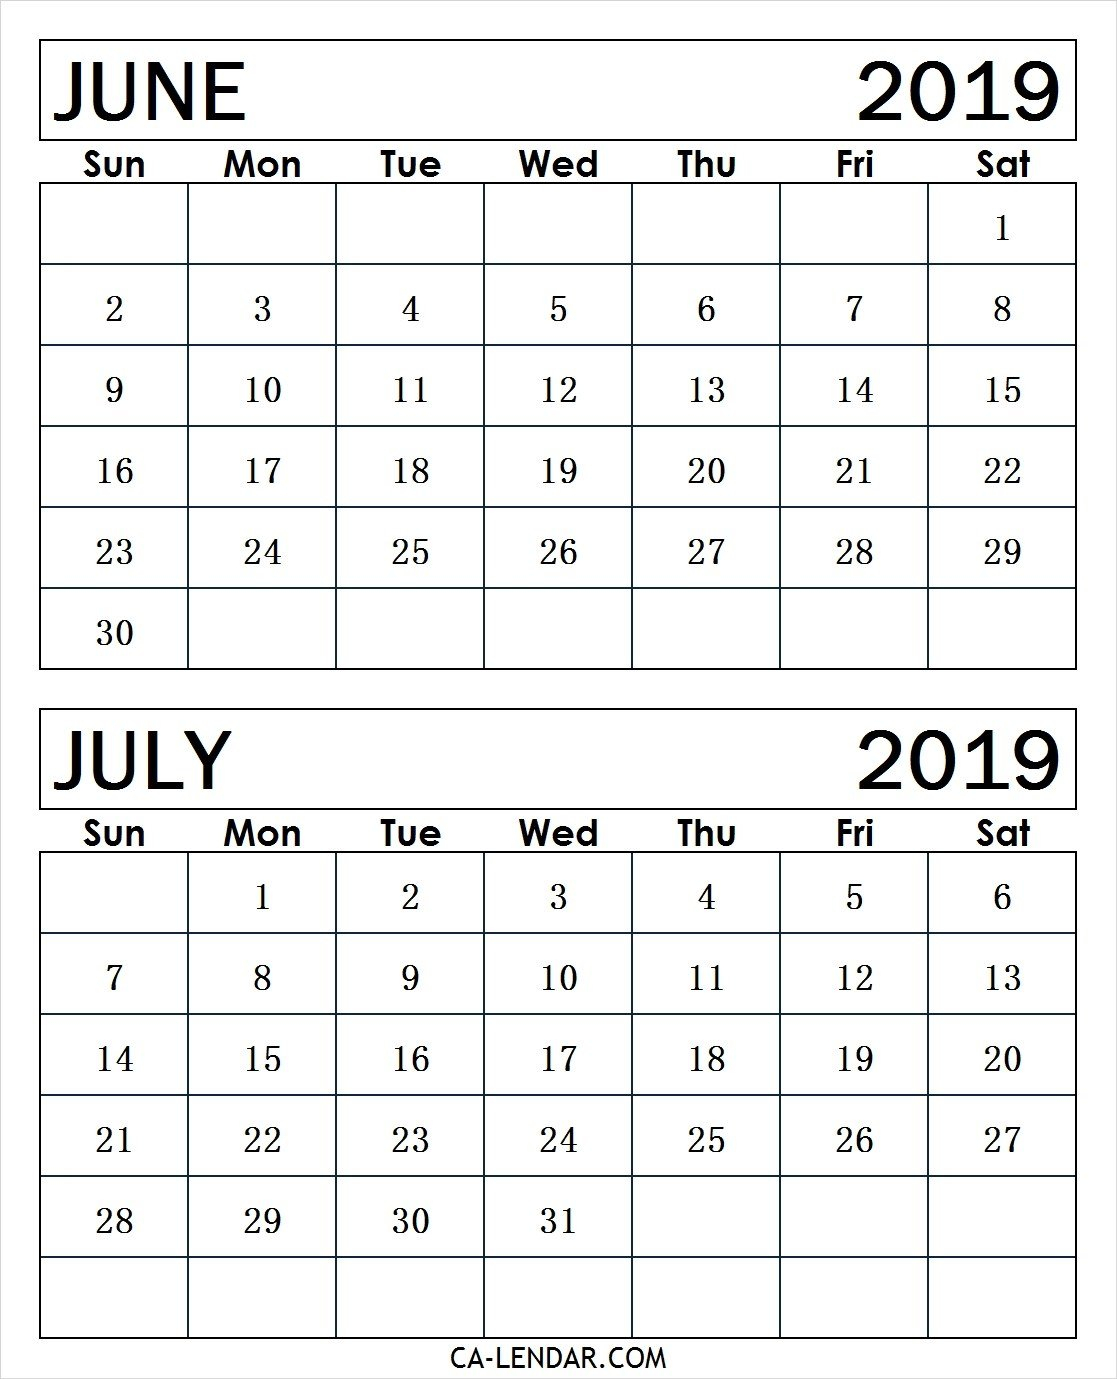 Printable June And July 2019 Calendar Monthly Templates - Calendar Calendar 2019 June July